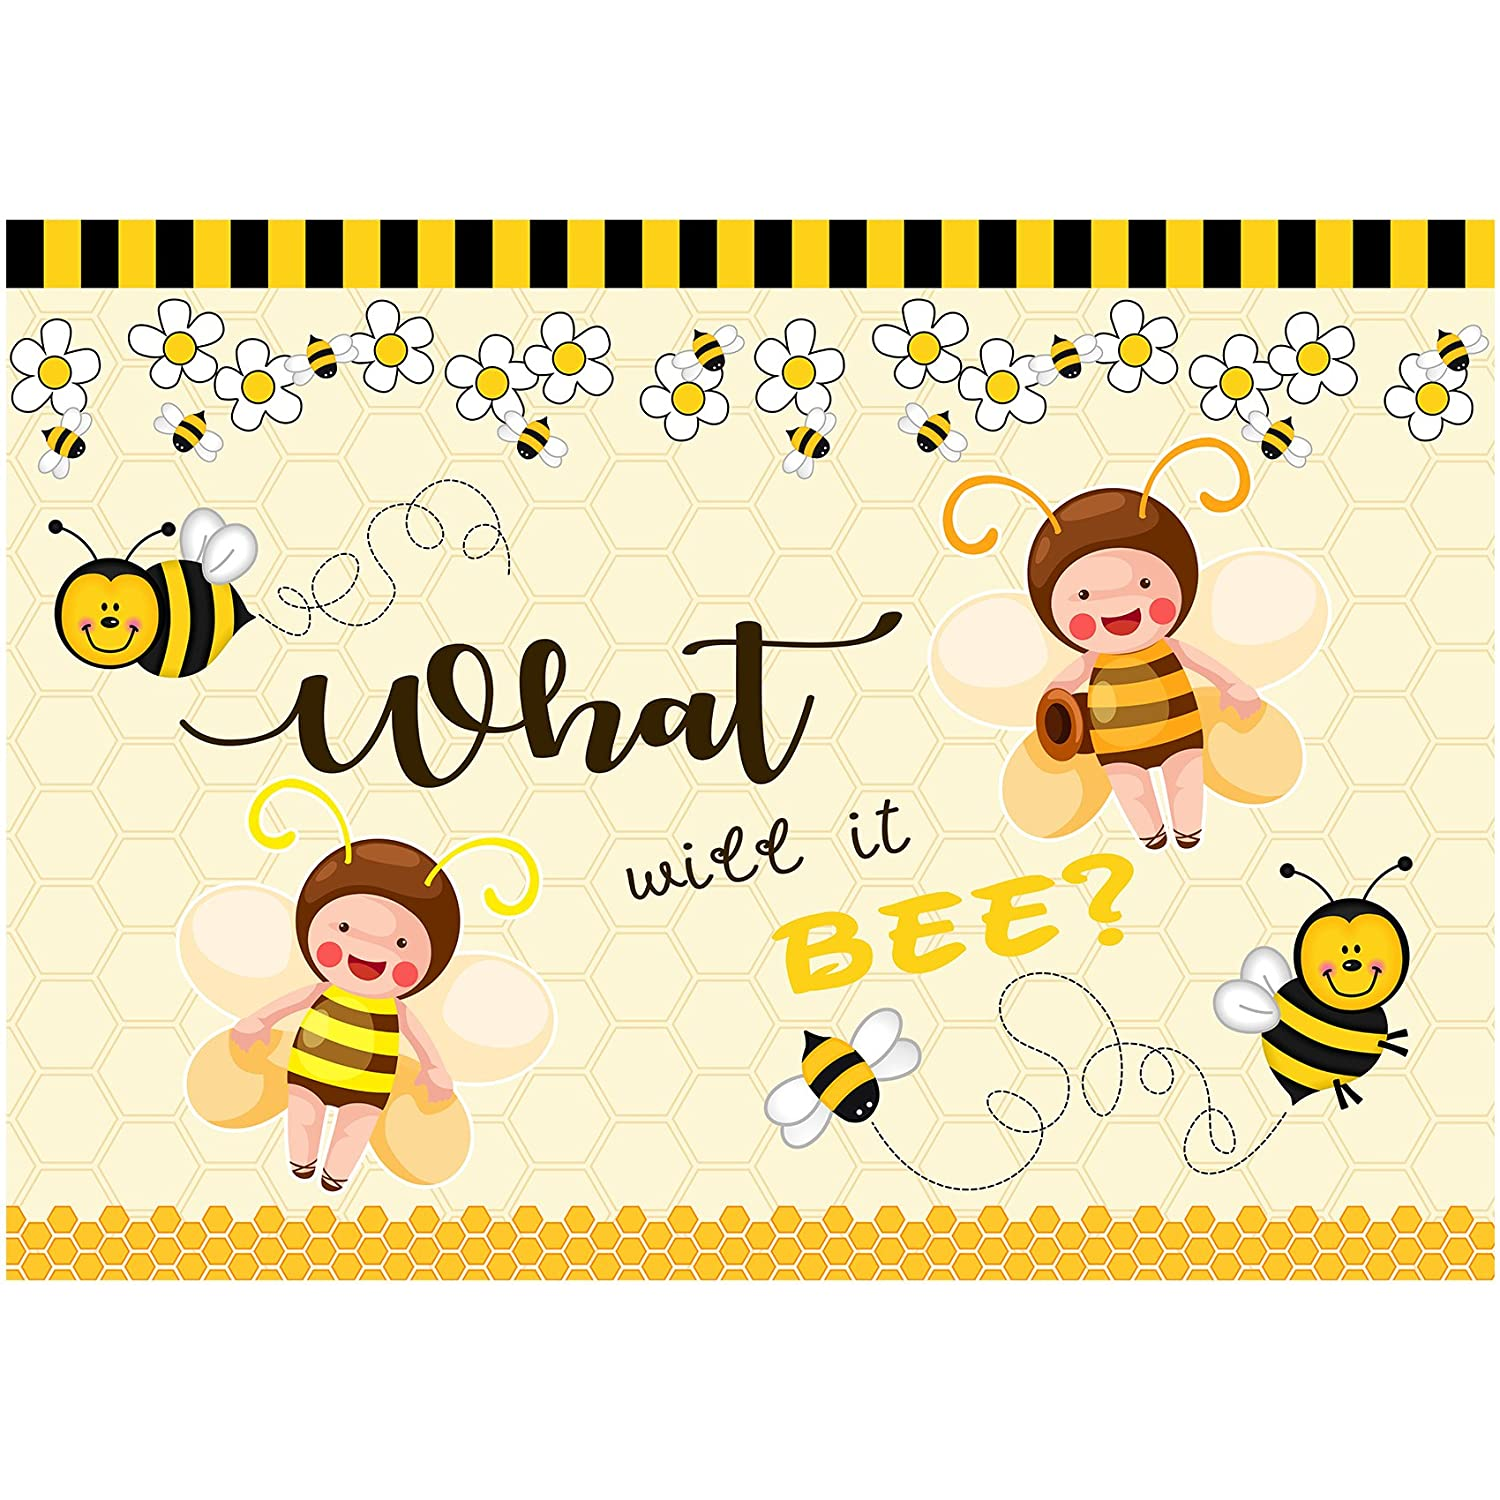 musykrafties what will it Bee Large Baby Shower banner Gender Reveal party Scenografia decorazione dessert Table background 7 x 5 piedi